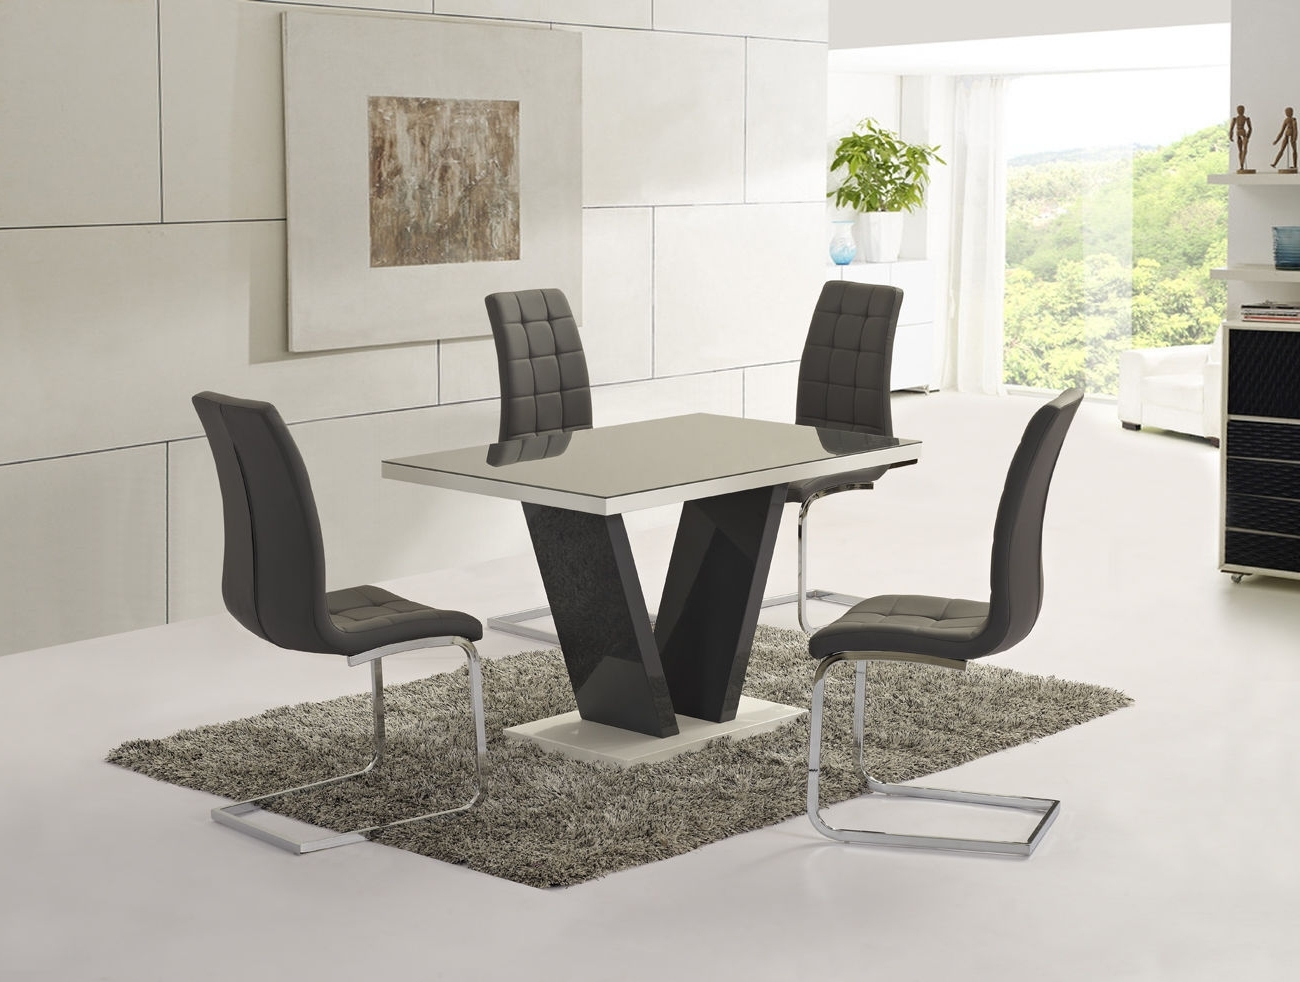 Ga Vico Gloss Grey Glass Top Designer 160Cm Dining Set – 4 6 Grey Intended For Most Popular White Glass Dining Tables And Chairs (View 19 of 25)